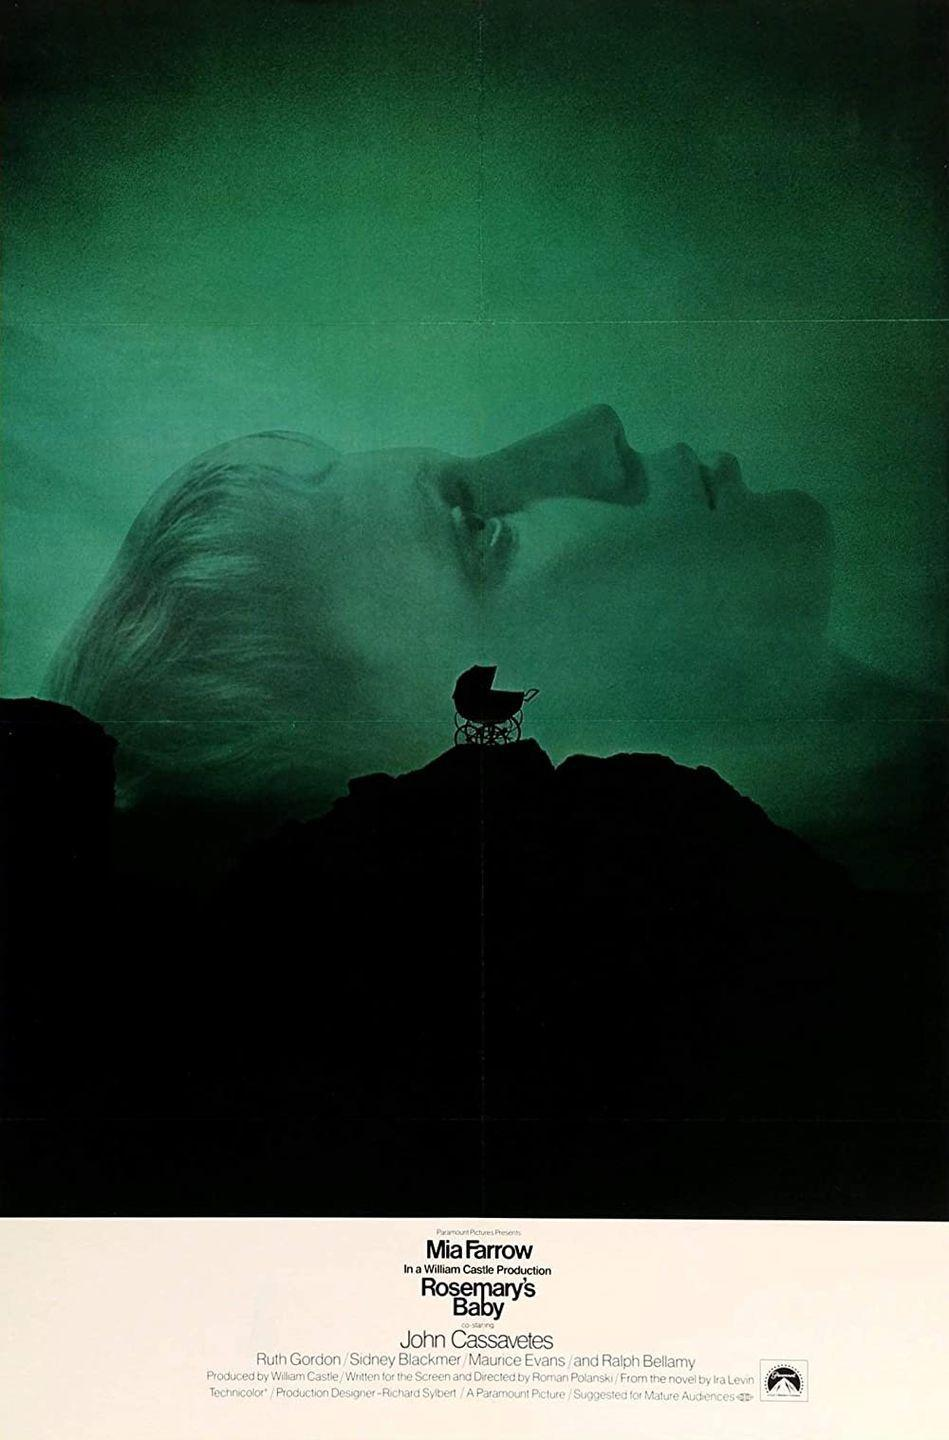 """<p>Are you ready to freak yourself the heck out? Get to streaming <em>Rosemary's Baby</em>, the iconic cult classic '60s flick. The plot follows an expecting young mom Rosemary Woodhouse who starts to suspect she's been impregnated by Satan and is carrying his spawn. Terror ensues. </p><p><a class=""""link rapid-noclick-resp"""" href=""""https://www.amazon.com/Rosemarys-Baby-Mia-Farrow/dp/B000I9W272?tag=syn-yahoo-20&ascsubtag=%5Bartid%7C10070.g.37360837%5Bsrc%7Cyahoo-us"""" rel=""""nofollow noopener"""" target=""""_blank"""" data-ylk=""""slk:WATCH NOW"""">WATCH NOW</a></p>"""